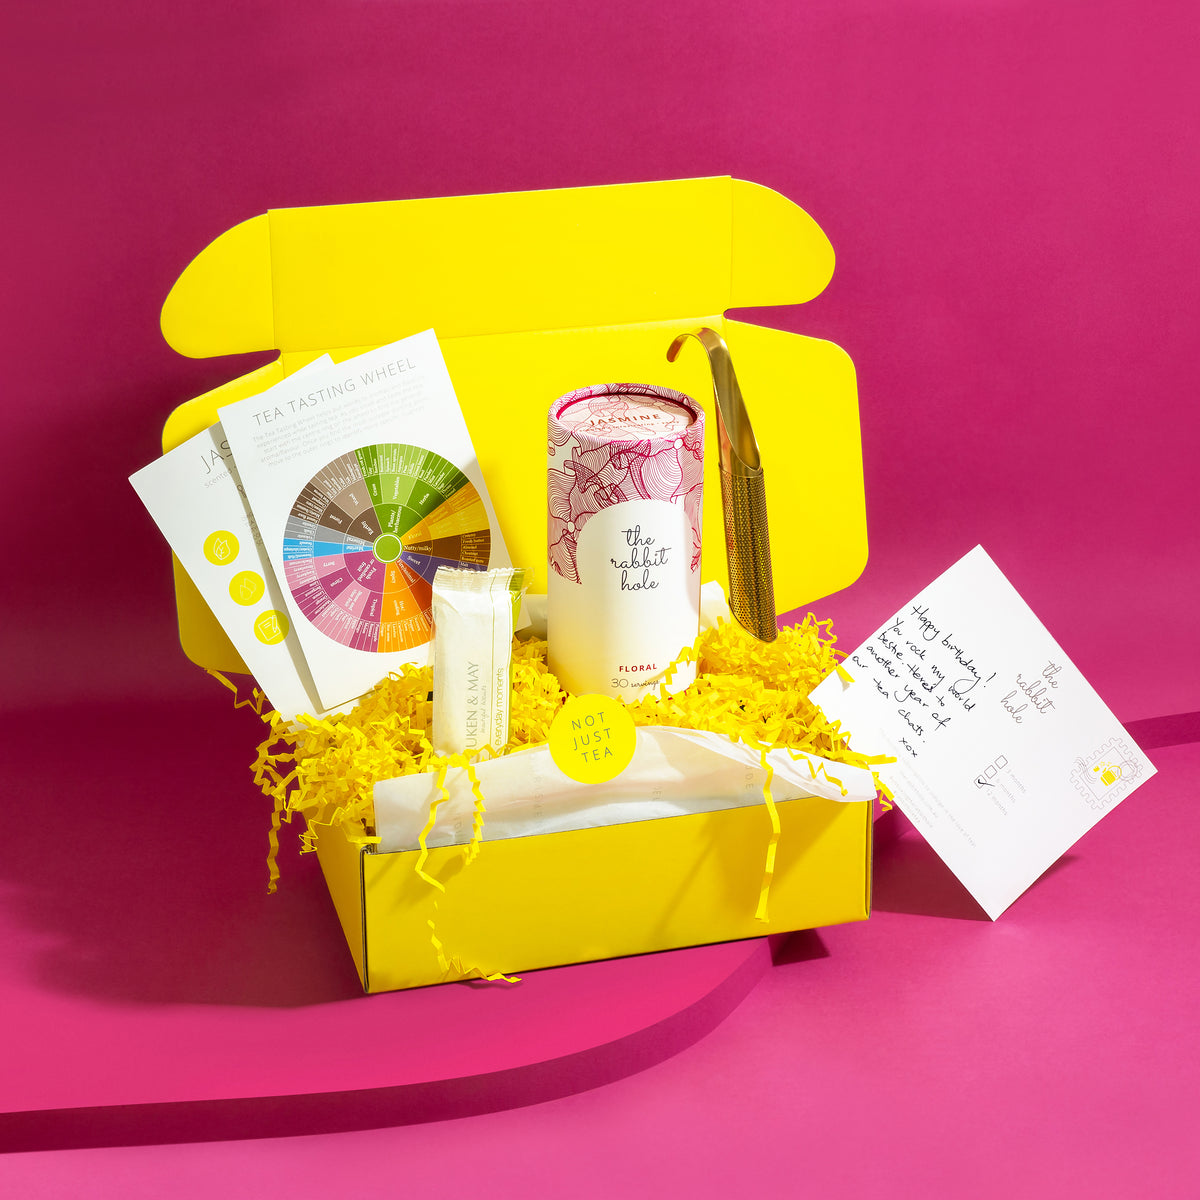 Tea mail by The Rabbit Hole - monthly tea subscription in yellow gift box on bright pink background.